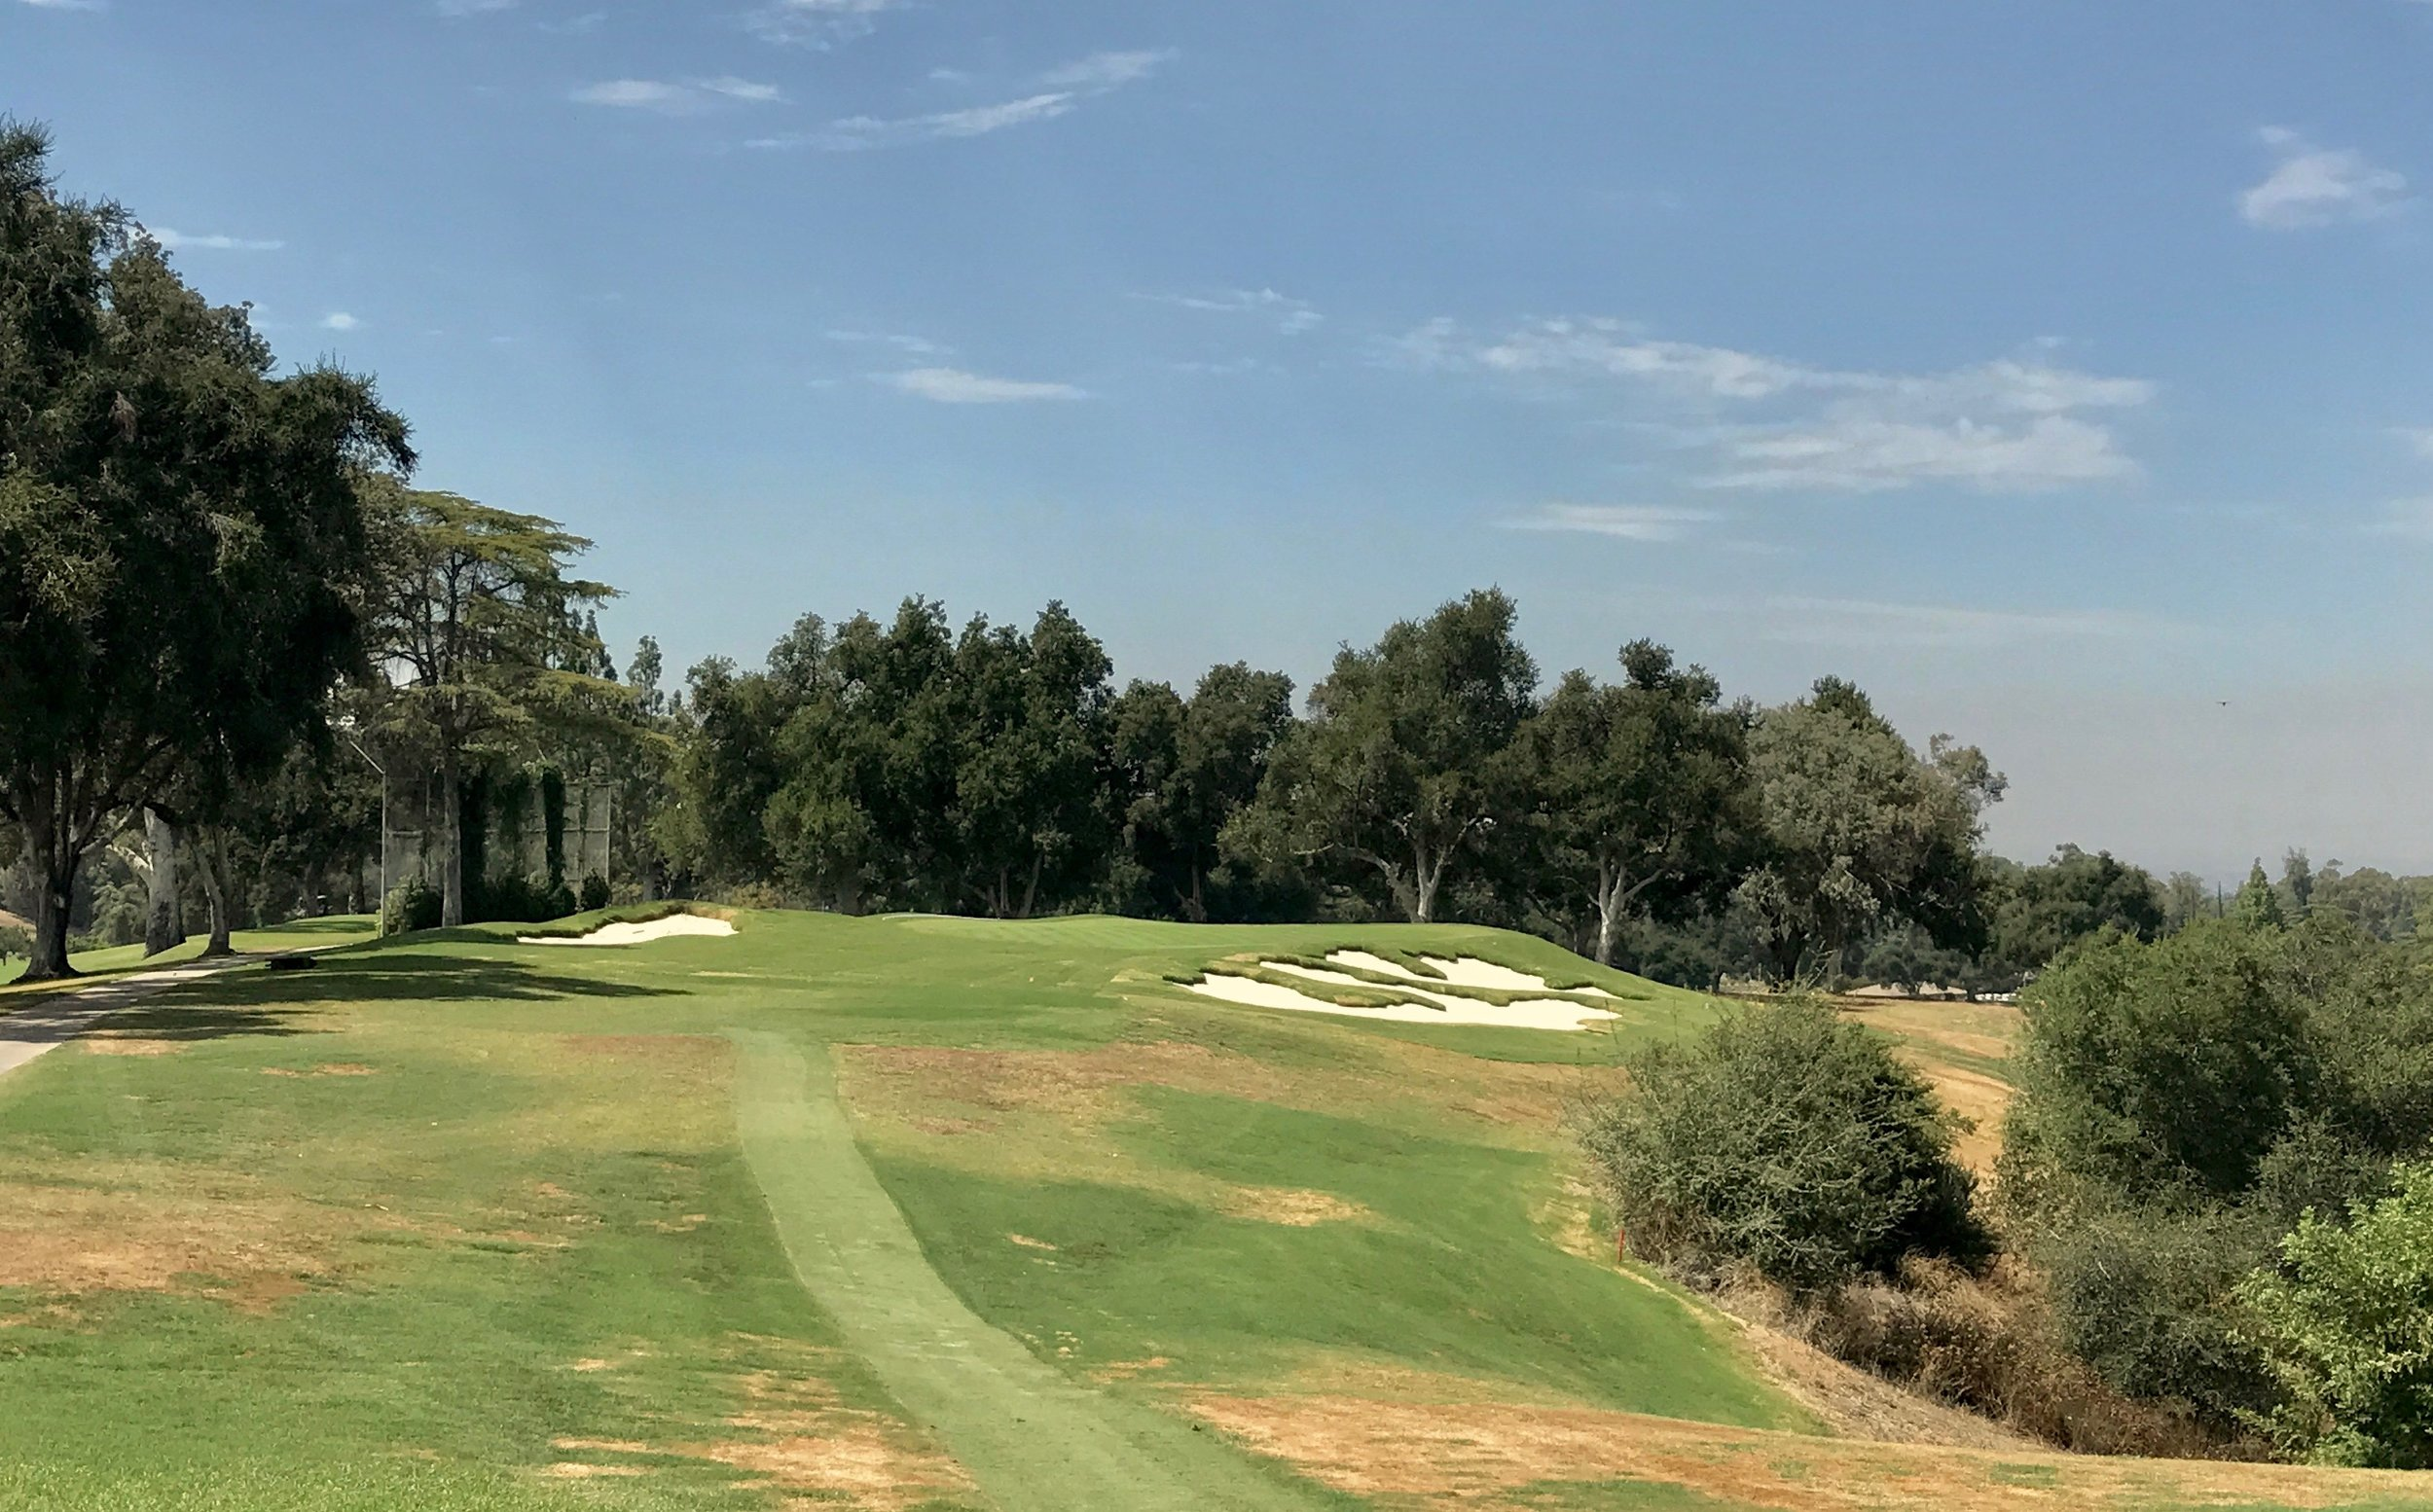 The view from the forward tee shows how the hole sets up and finishes with a big view out to the right.